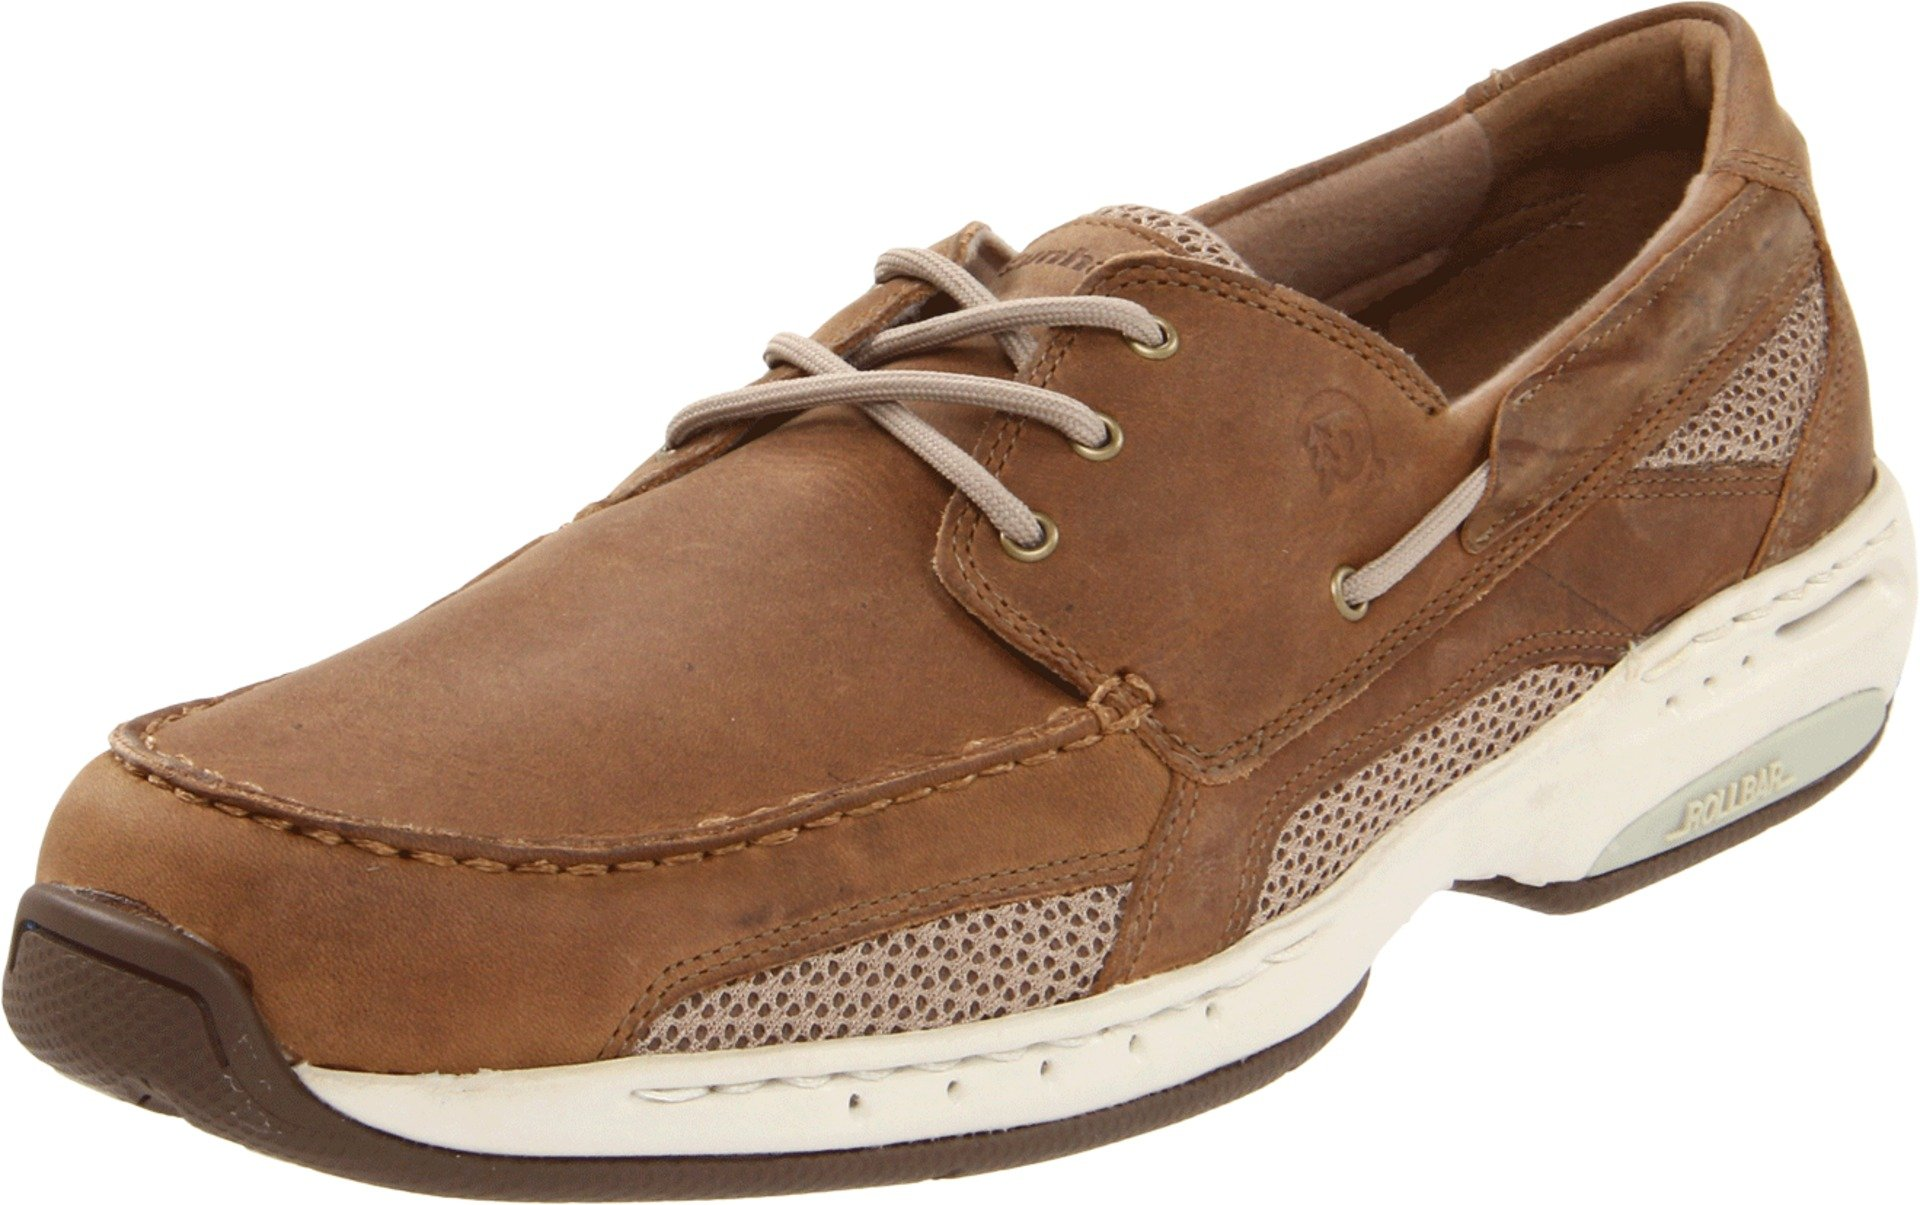 Dunham Men's Captain Boat Shoe,Tan,9 2E US